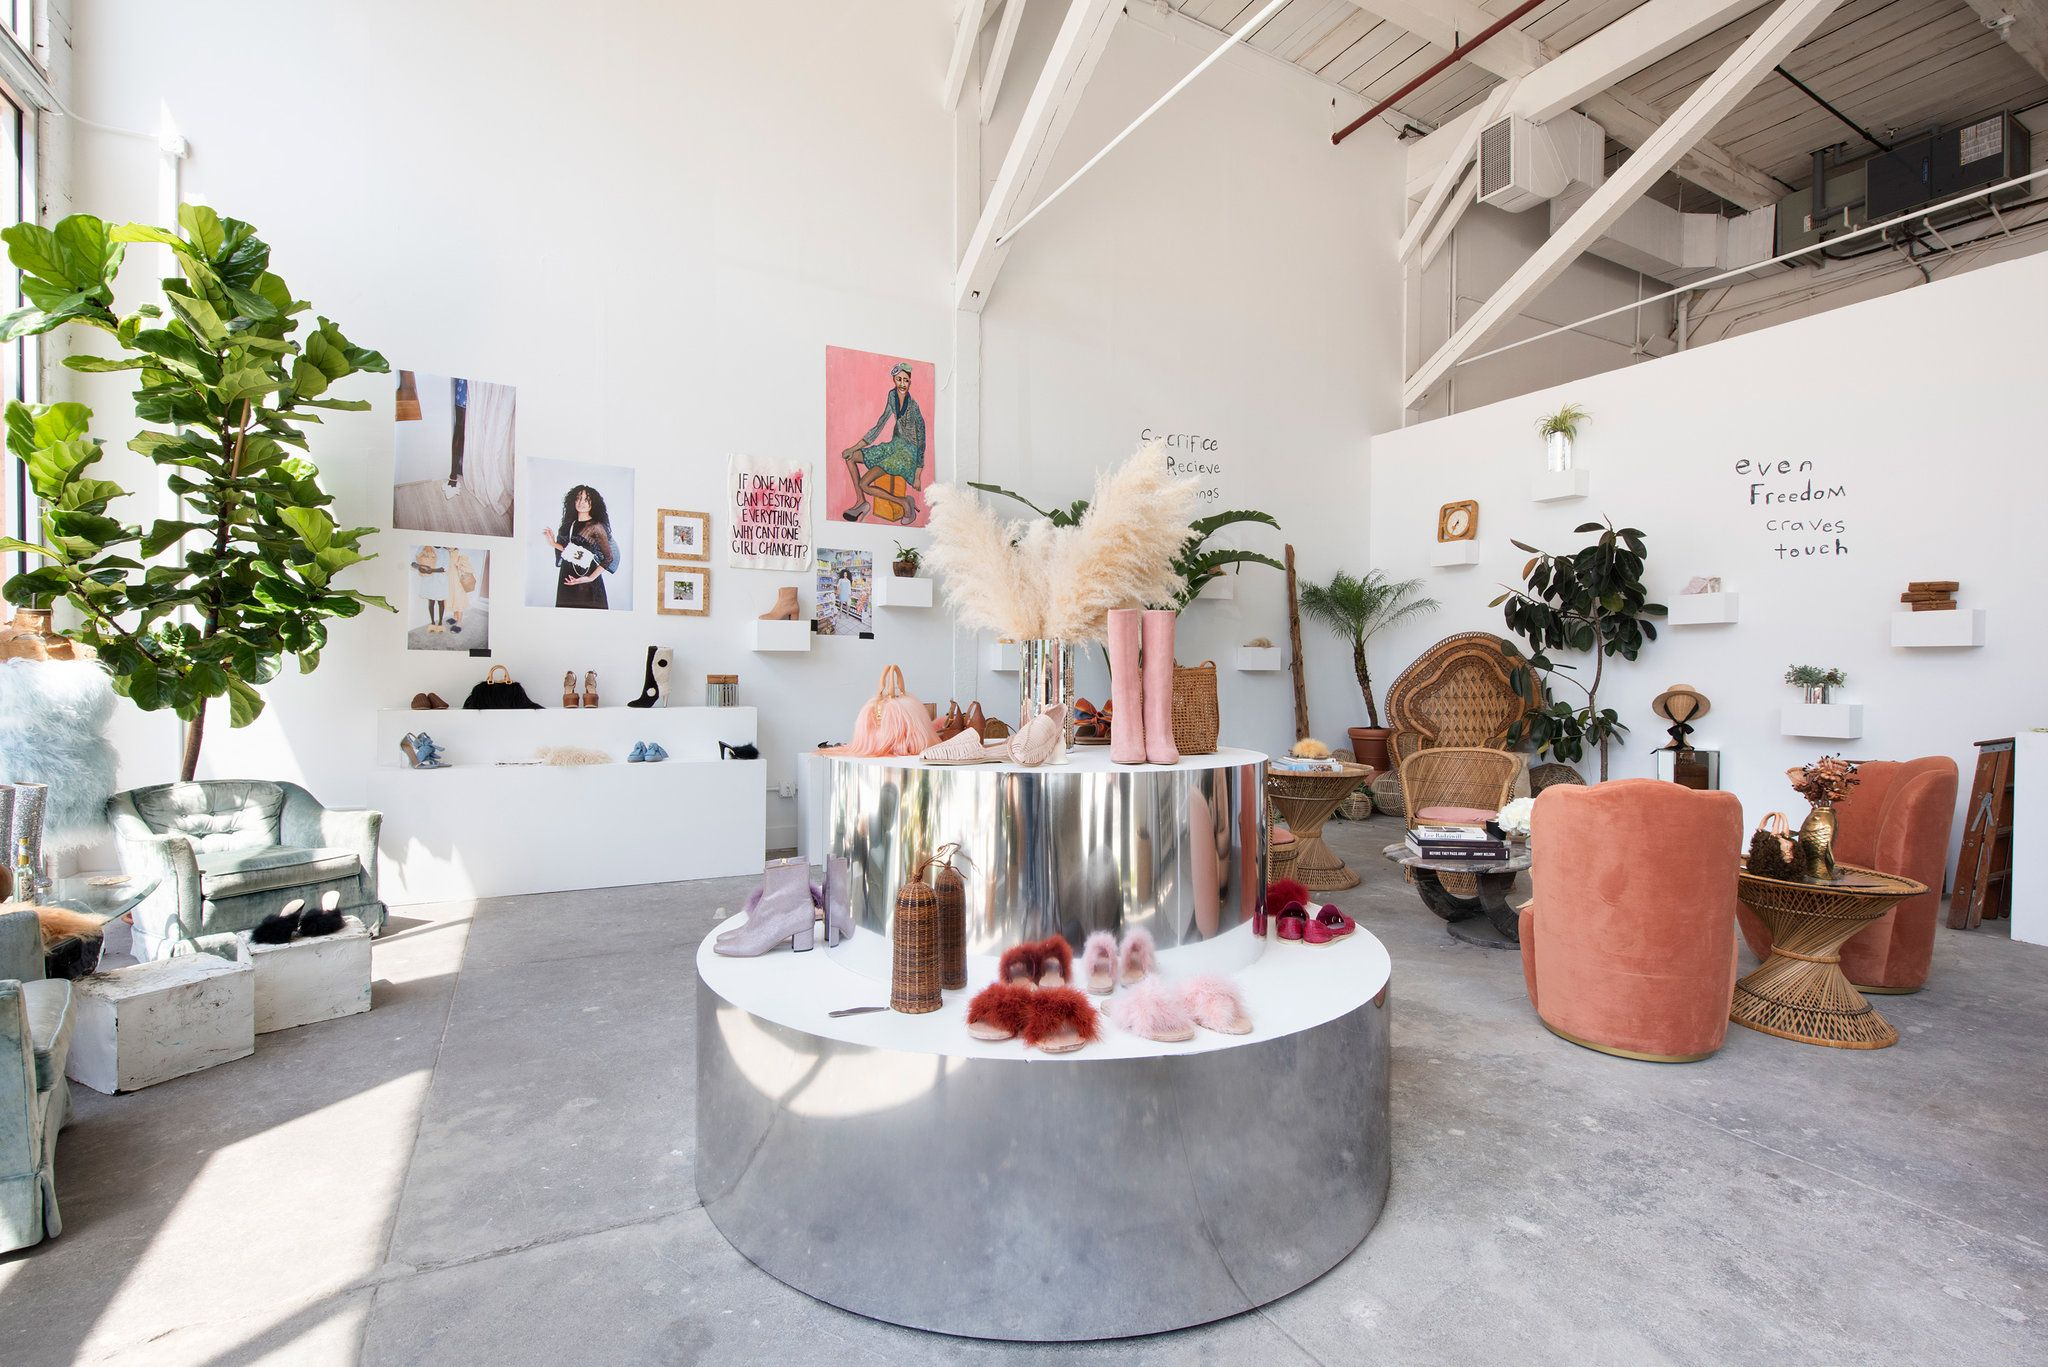 A Shoe Store Where Everything, Even The Plants, Tells A